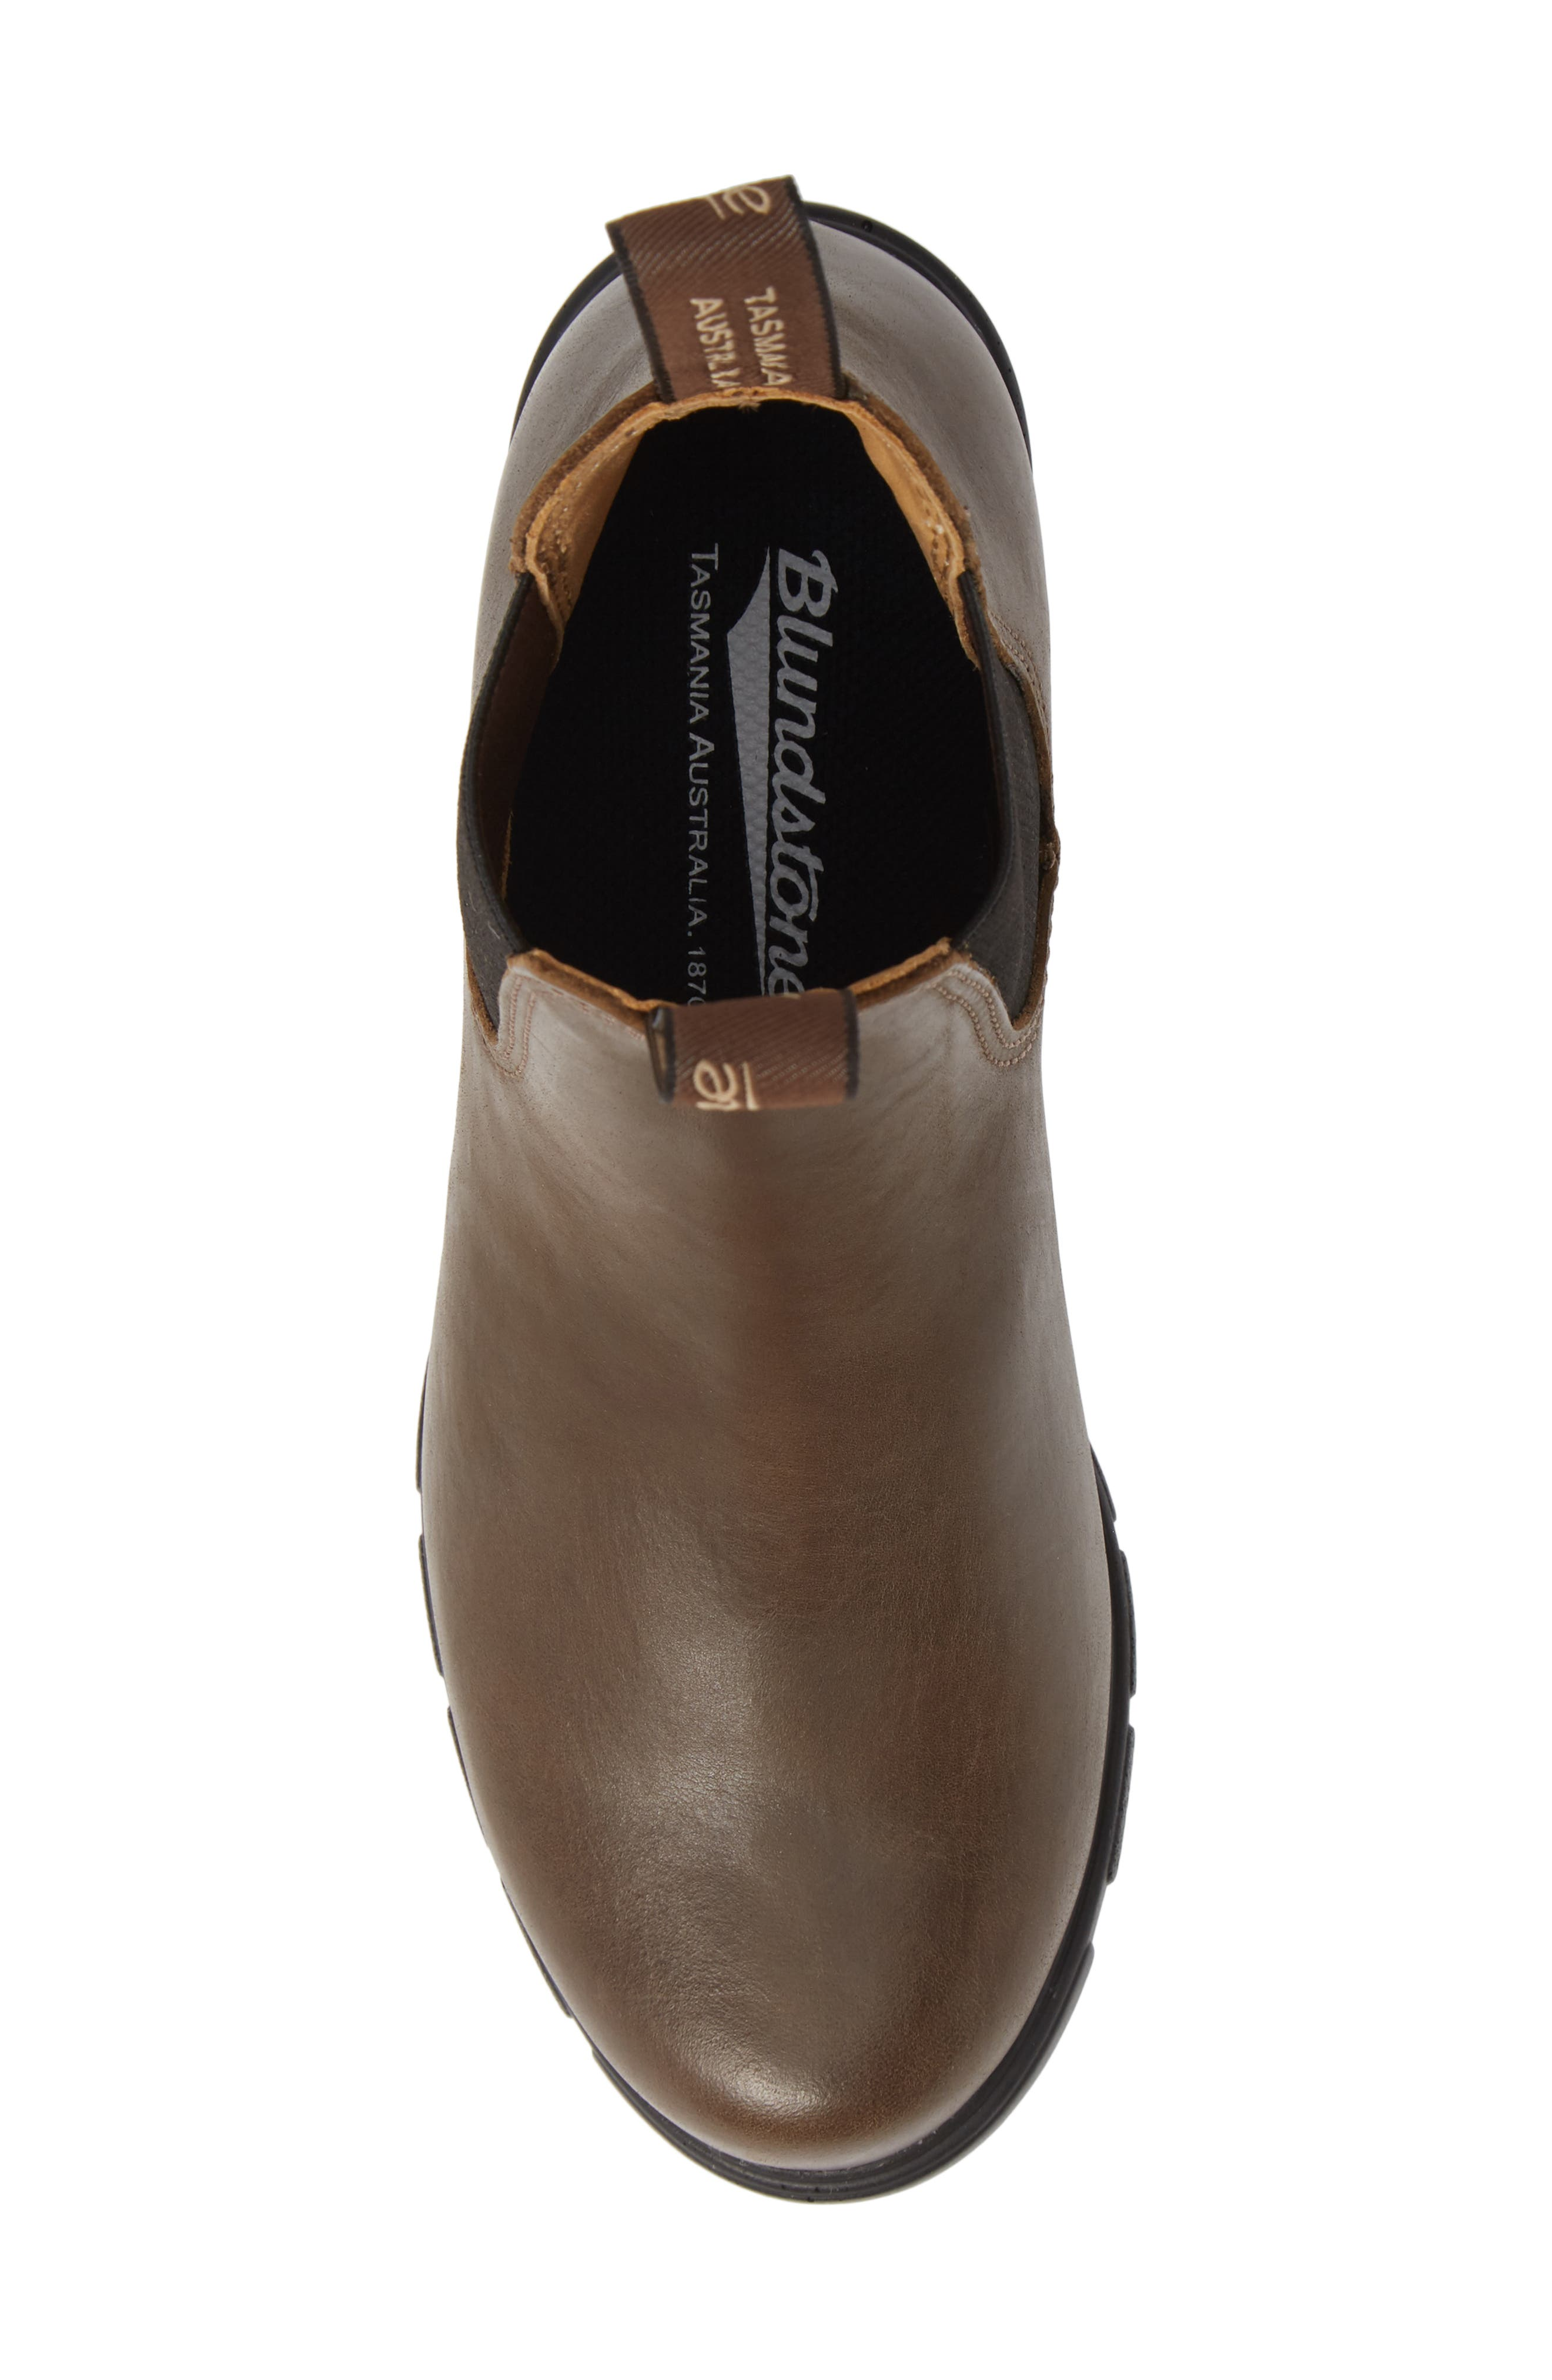 1671 Chelsea Boot,                             Alternate thumbnail 5, color,                             ANTIQUE TAUPE LEATHER